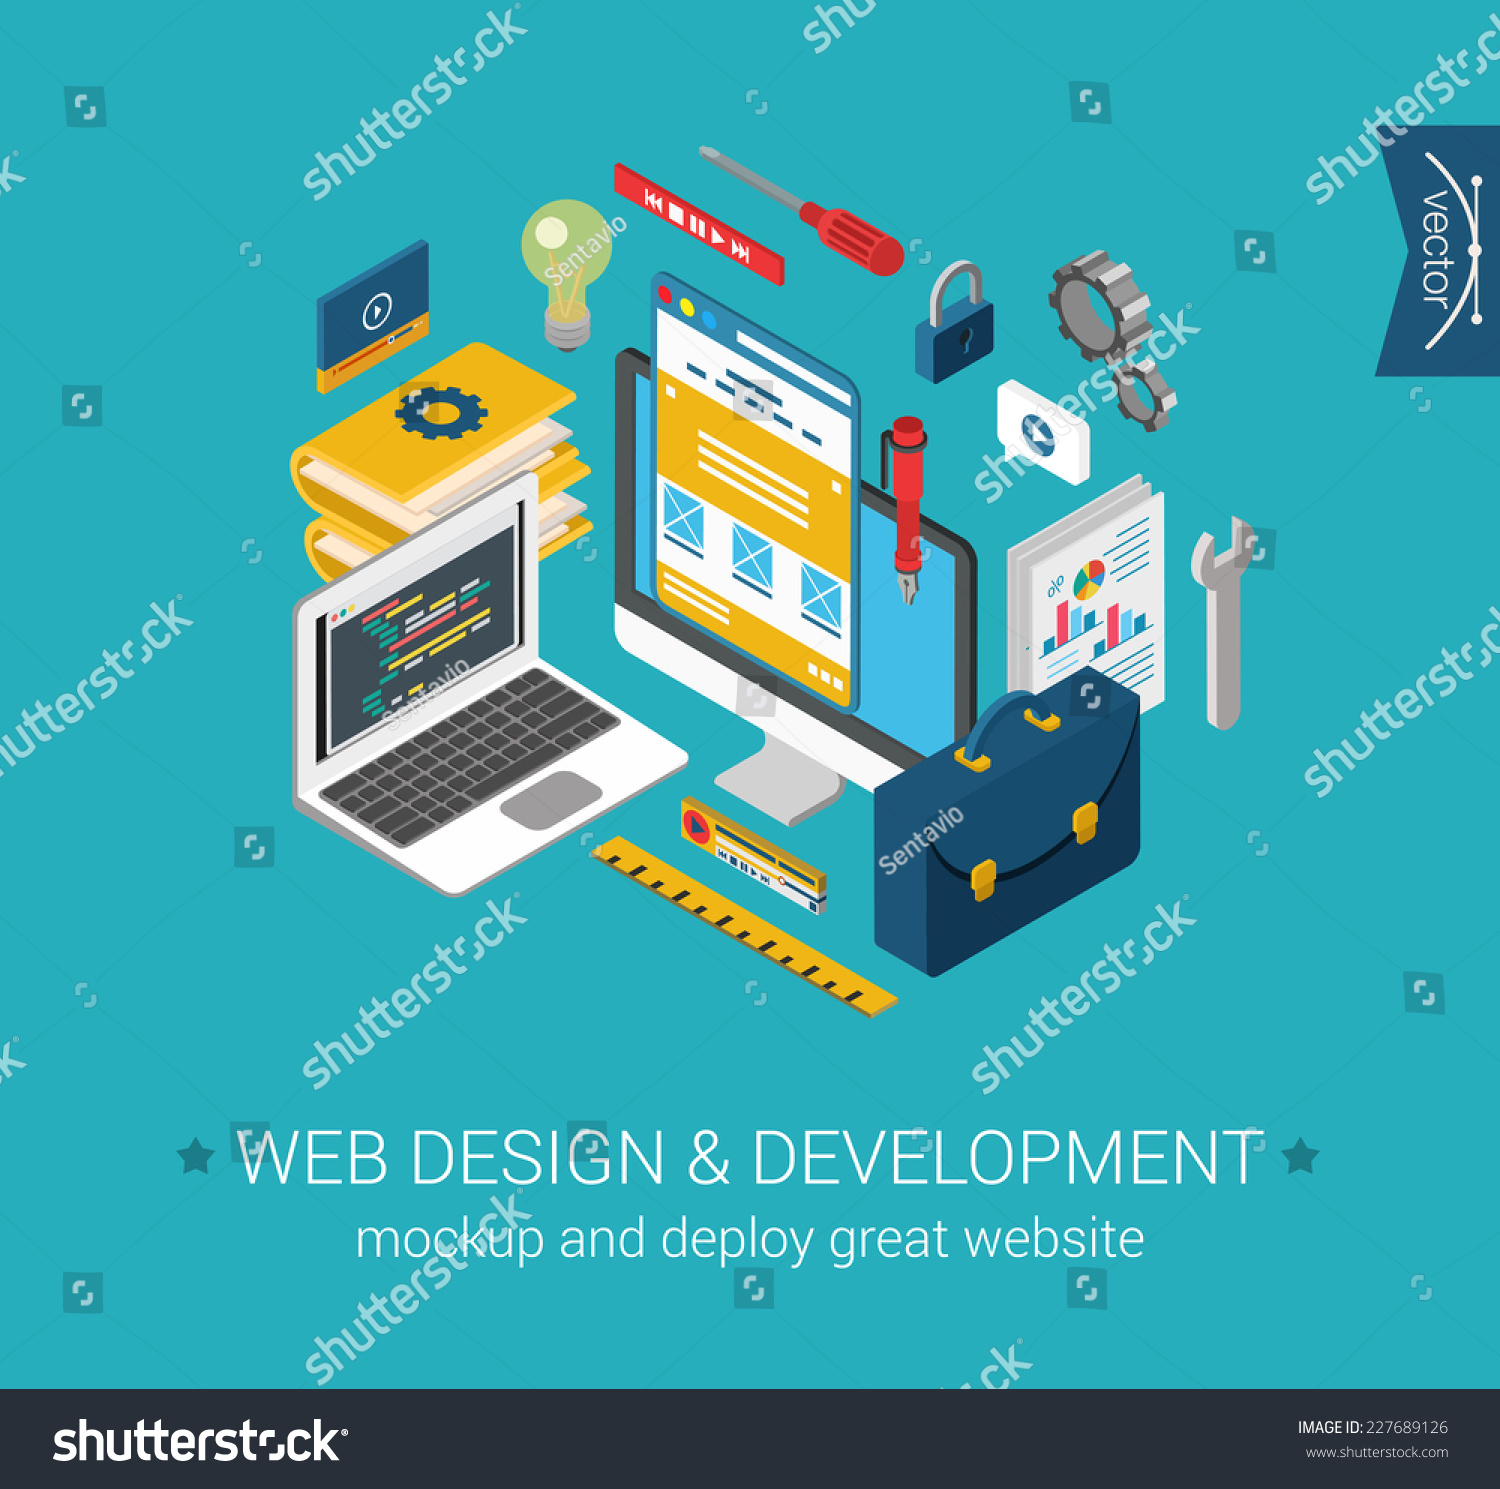 Web Design Development Programming Coding Mockup Stock. Becoming An Addictions Counselor. Ohlone College Financial Aid. Substitute Baking Chocolate For Cocoa Powder. What Age Qualify For Medicare. Mixed Martial Arts Training For Beginners. Family Lawyers In Calgary Home Owner Warranty. Diploma In Hospital Management. Banks In Bradenton Florida Free Redit Report